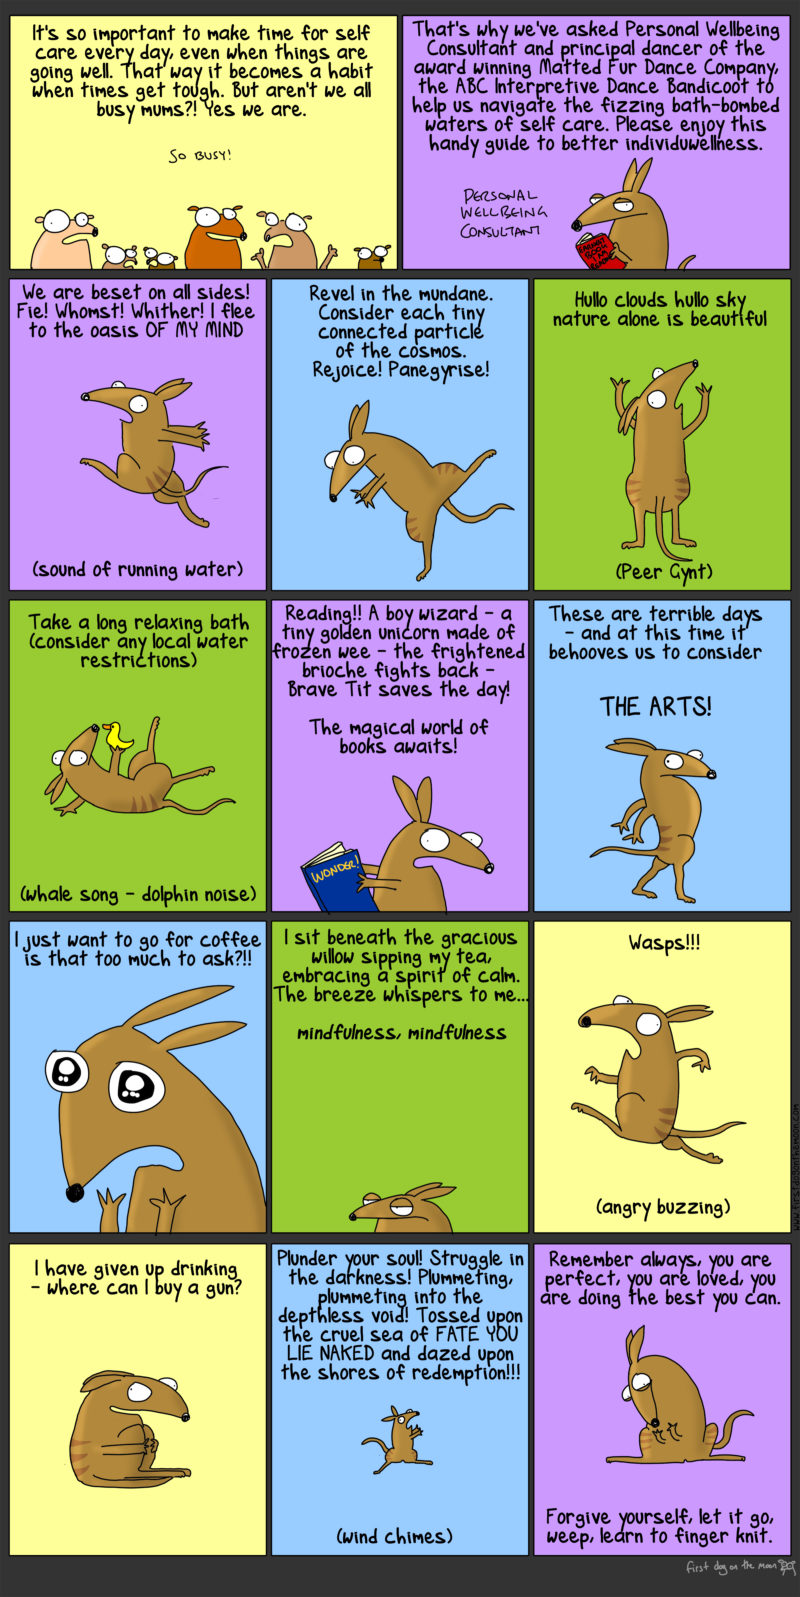 A handy guide to better individuwellness with the ABC Interpretive Dance Bandicoot